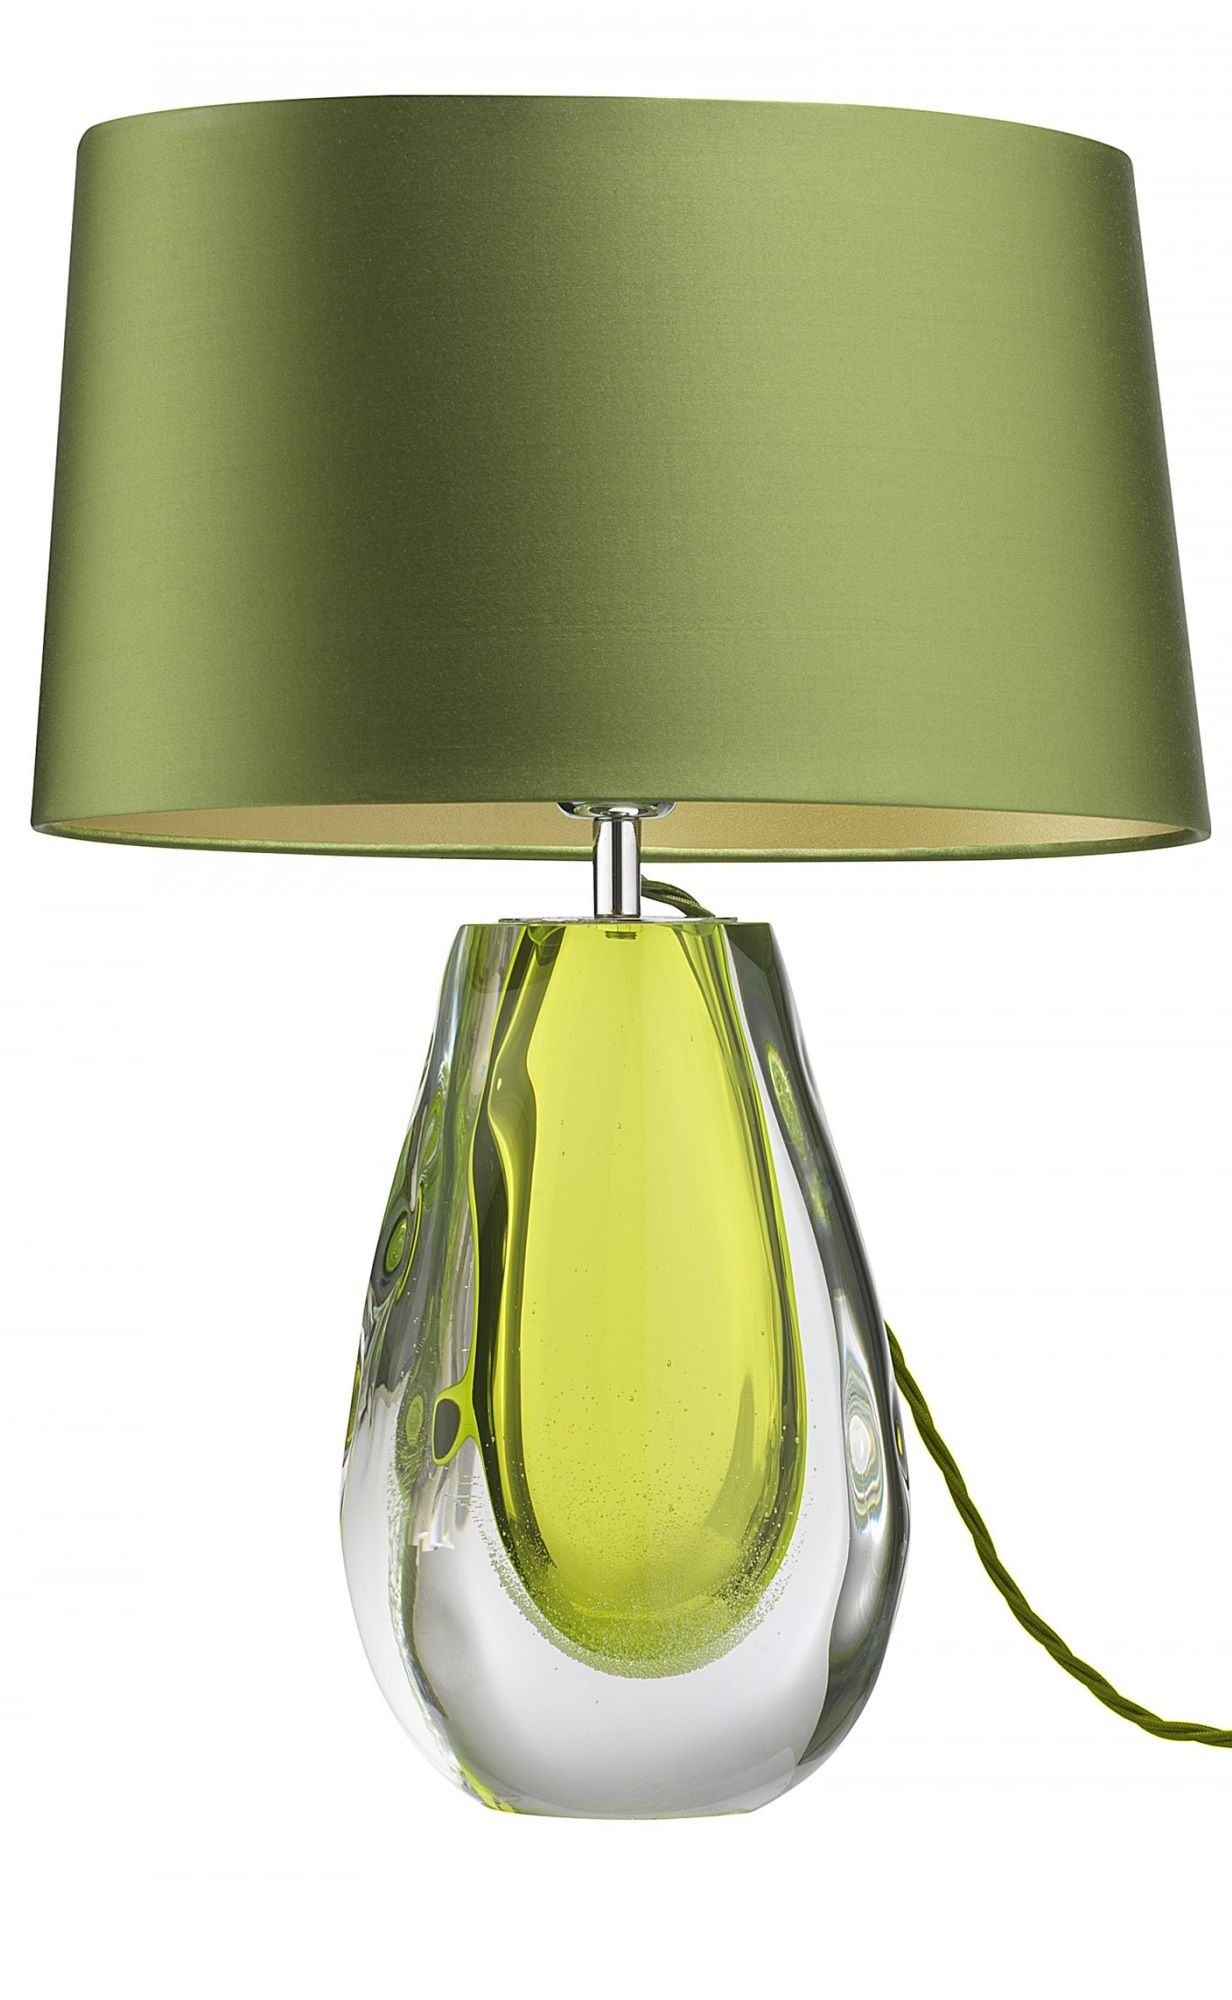 Green Green Table Lamp Table Lamps Modern Table Lamps Contemporary Table Lamps Designer Table Lamps Lux Green Table Lamp Green Lamp Art Glass Table Lamp